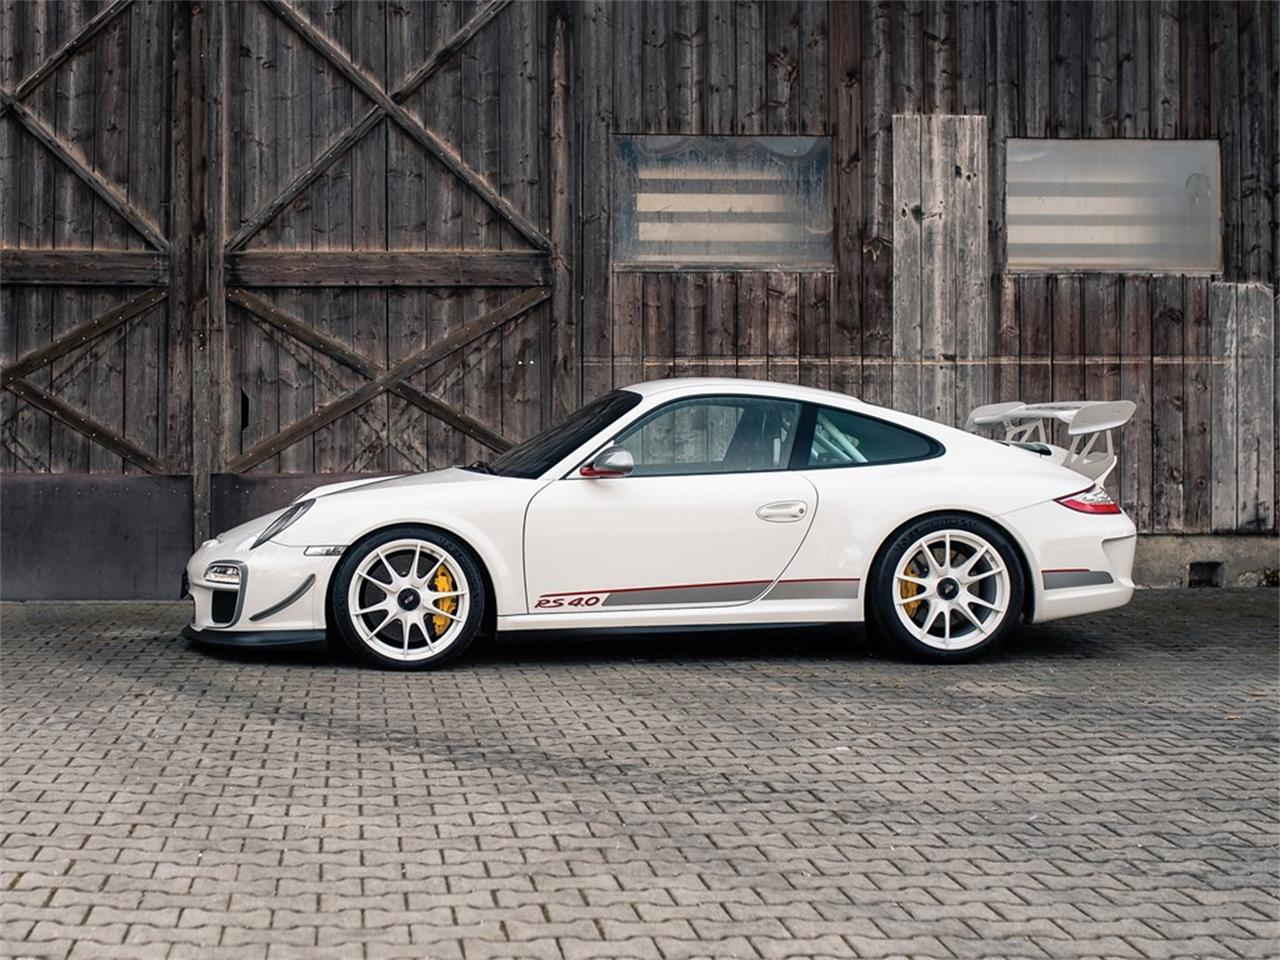 2011 Porsche 911 GT3 RS 4.0 (CC-1328111) for sale in Essen, Germany